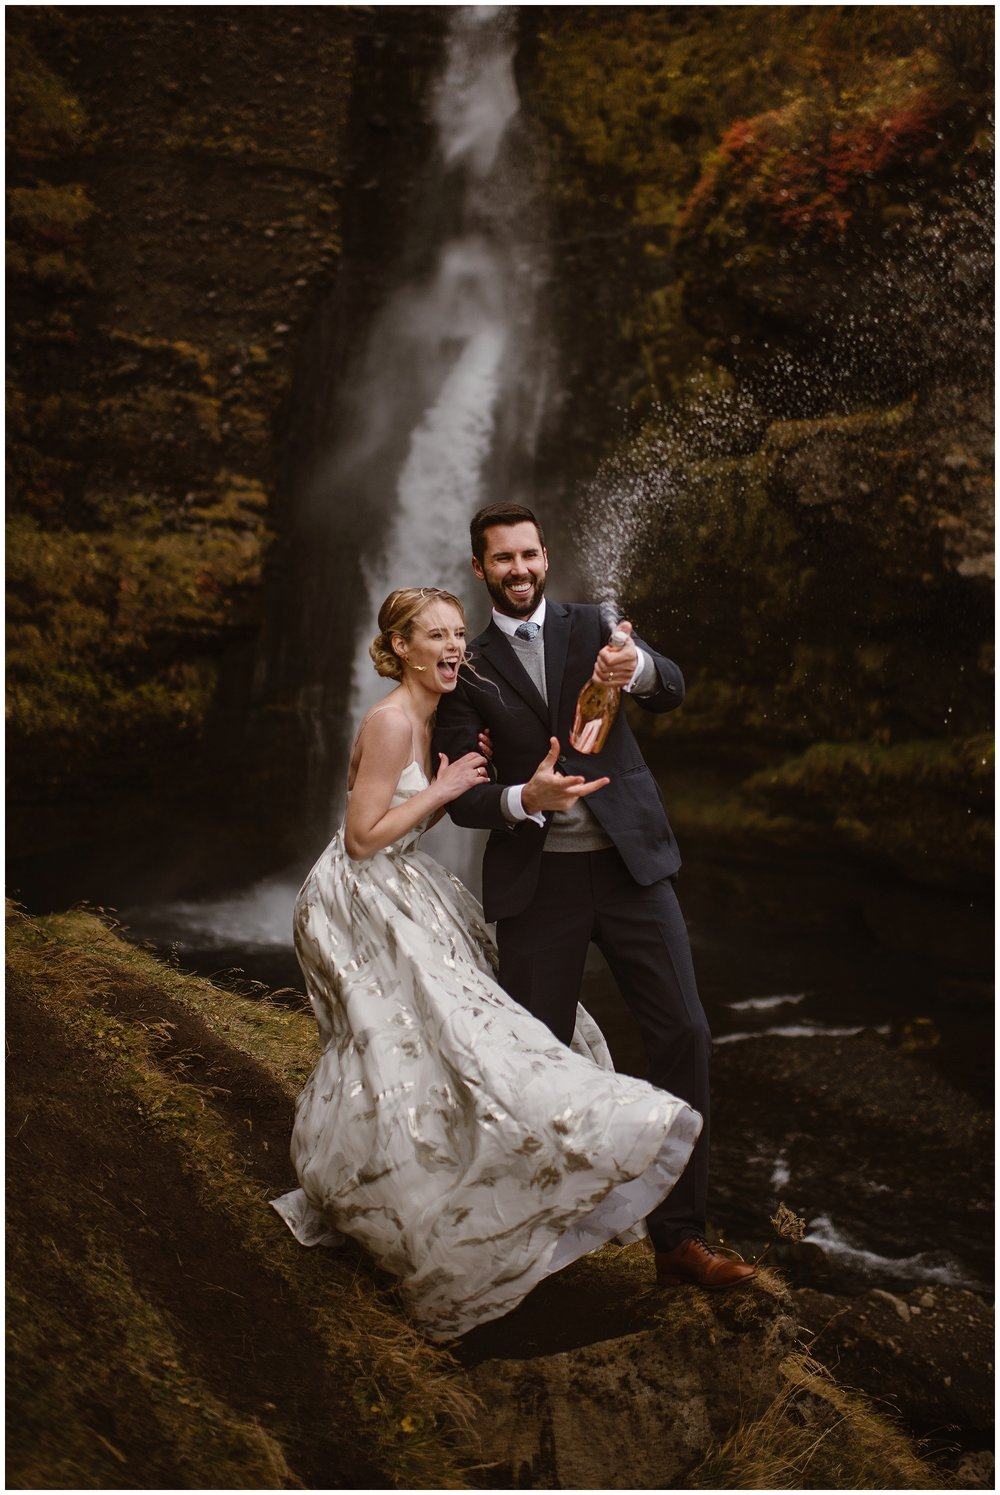 Celebrate your dream destination elopement by spraying a bottle of champagne, like this couple who eloped near a waterfall in Iceland. Photo by Maddie Mae, Adventure Instead Elopement Photographers.